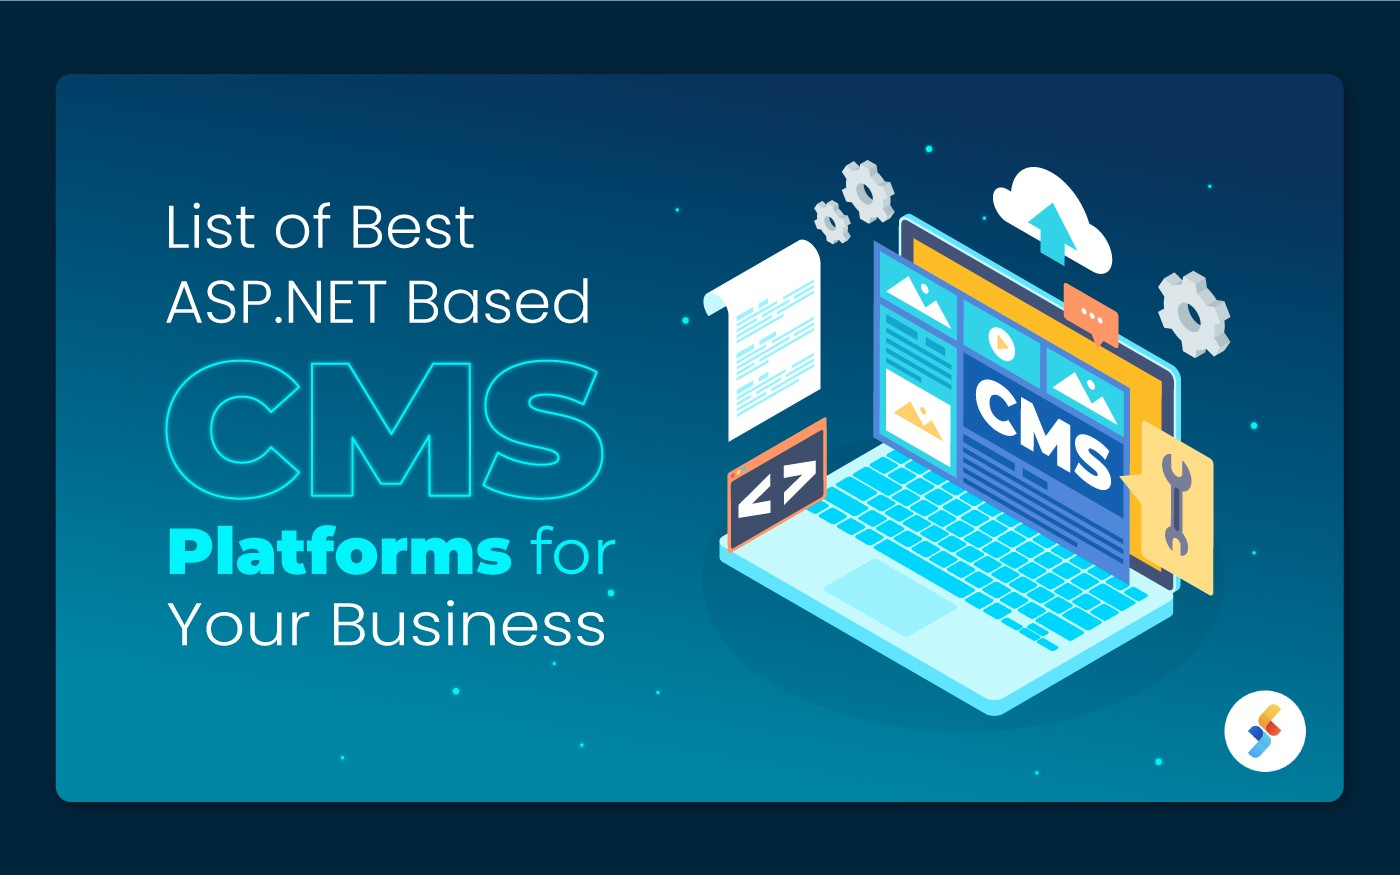 Top 5 Content Management Systems (CMS) in ASP.NET